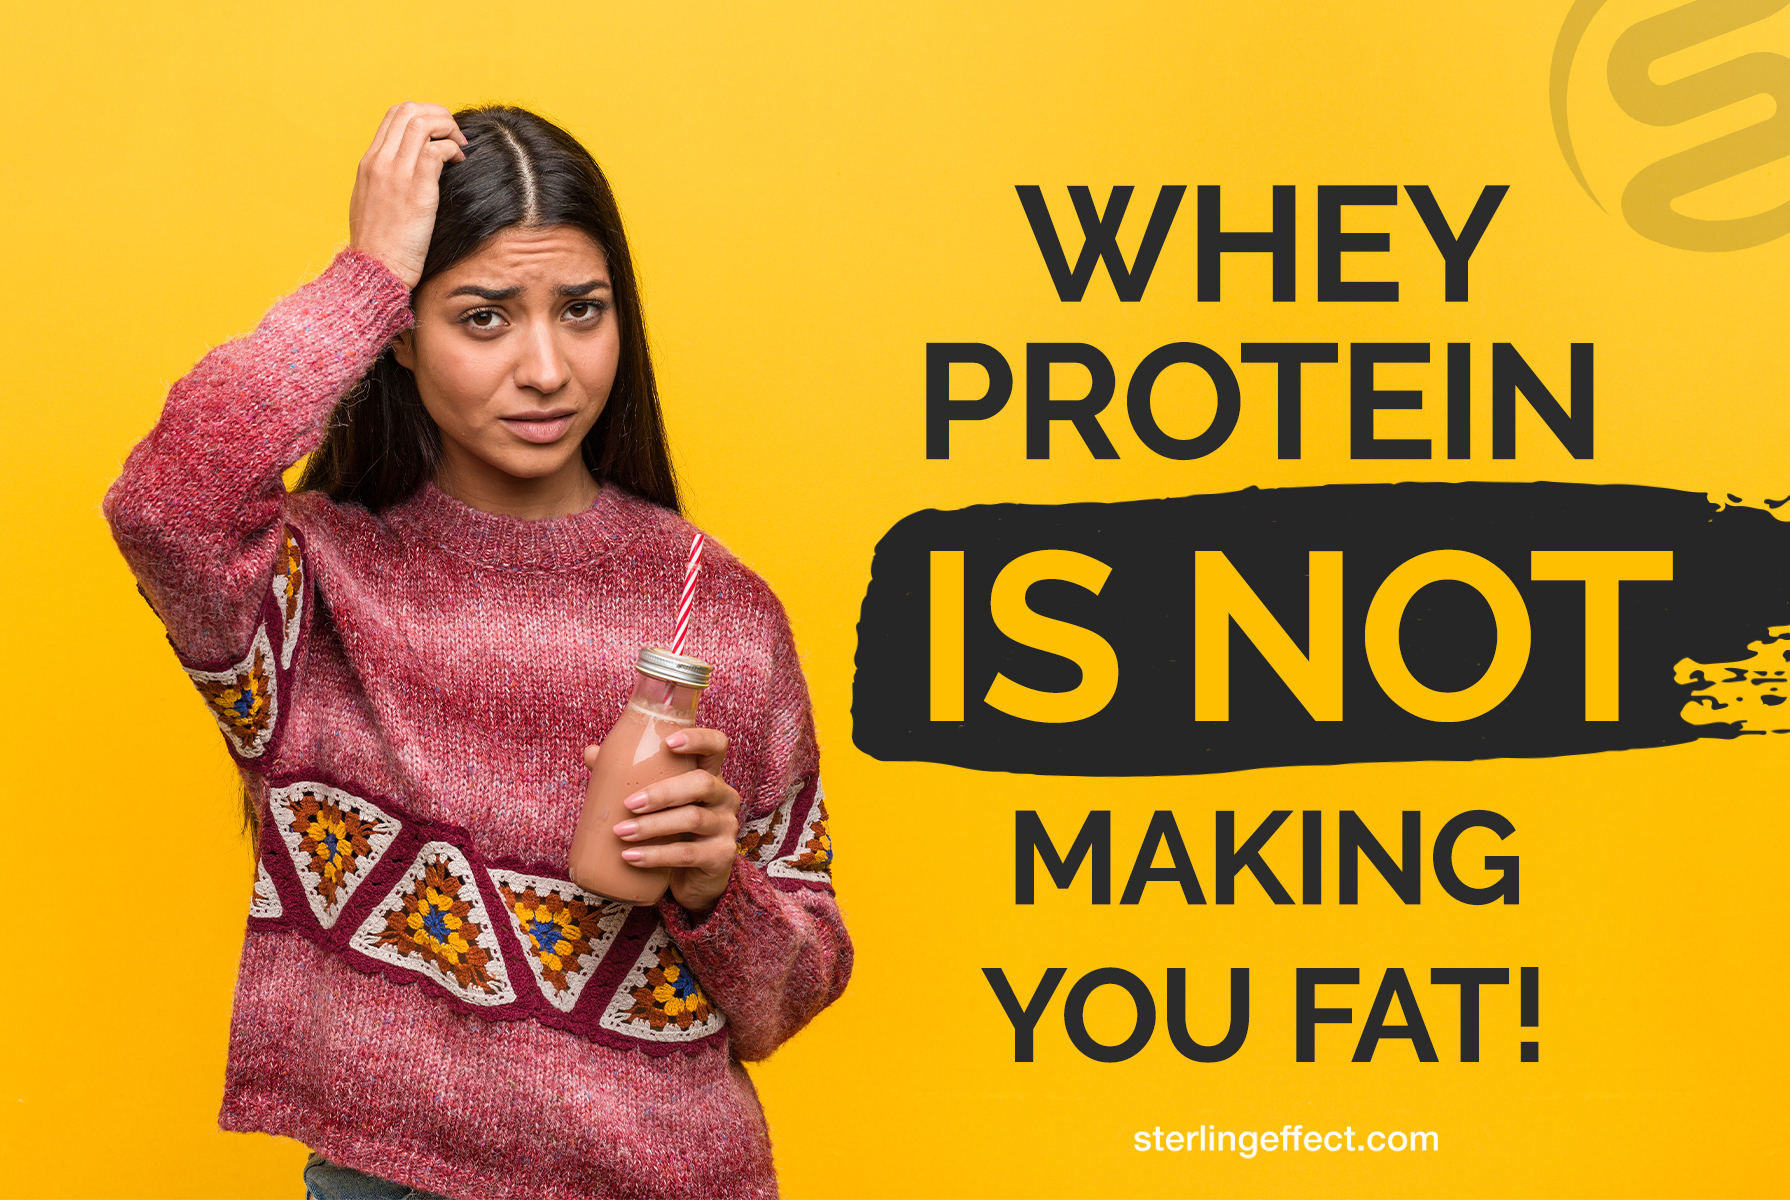 Whey Protein is NOT making you fat!